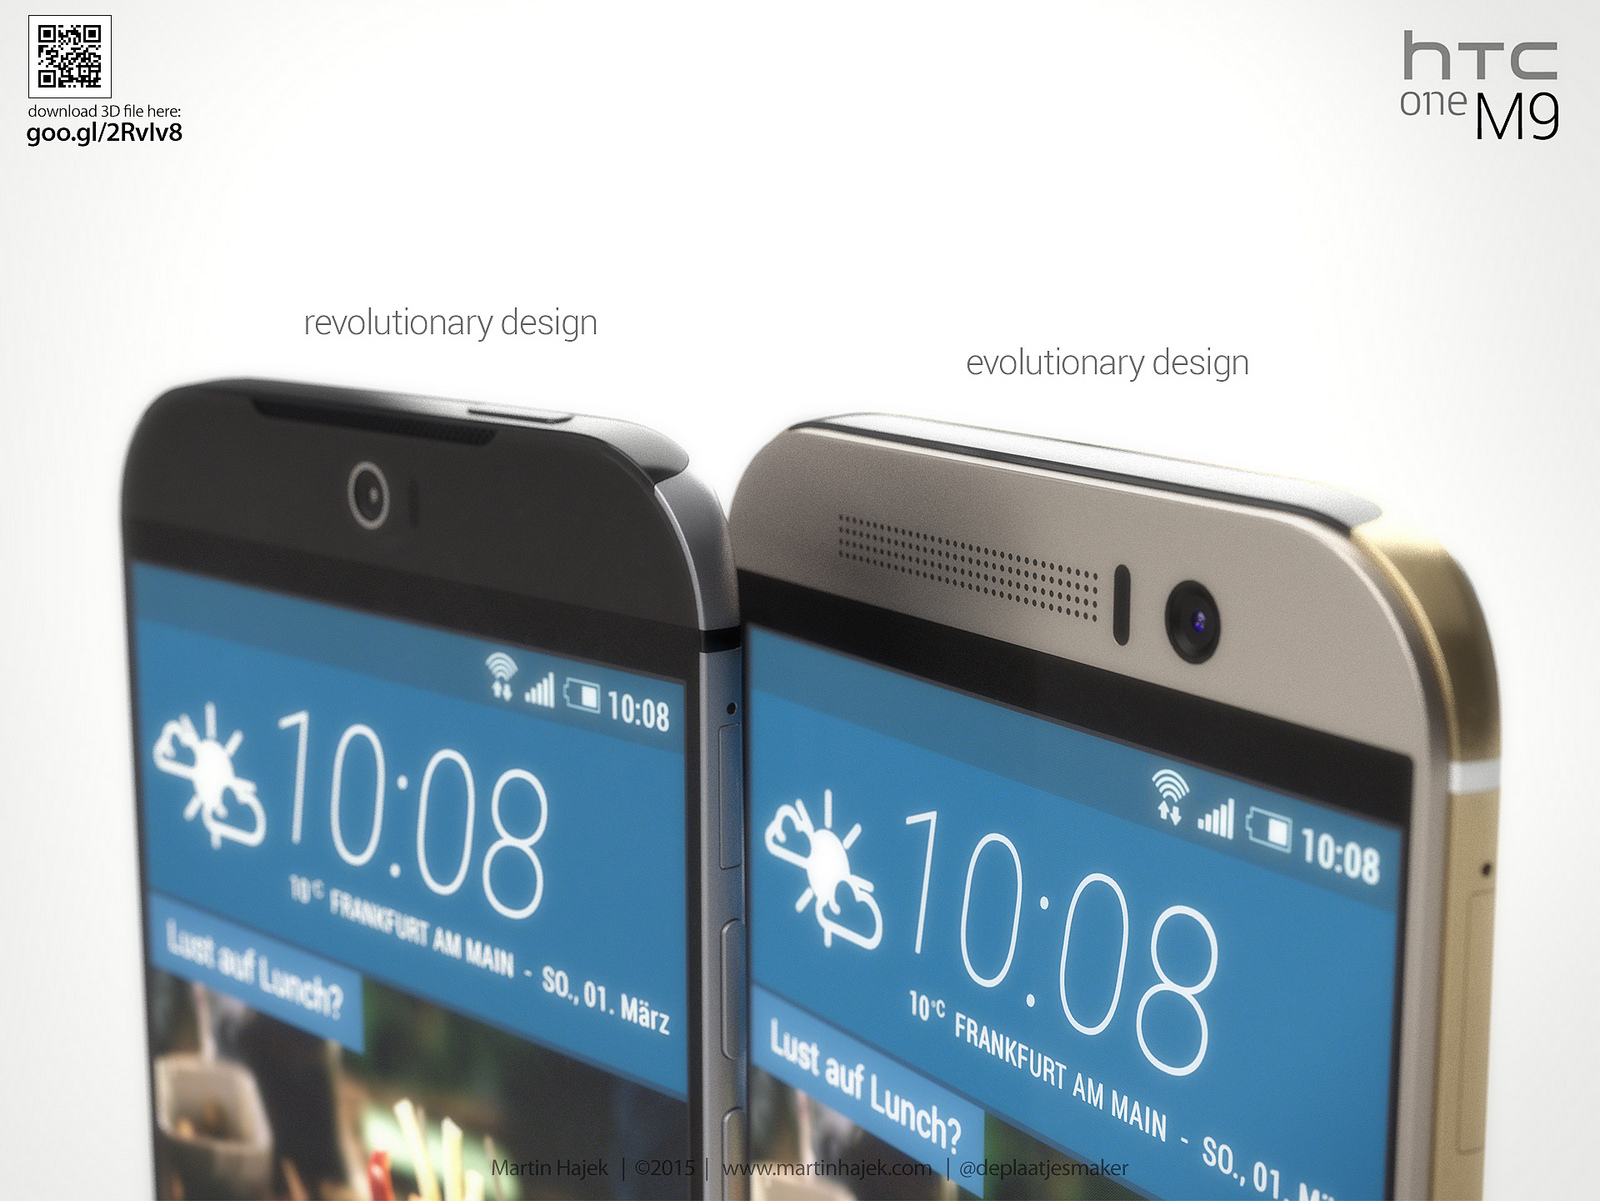 HTC-One-M9-comparativa-Martin-Hajek(4)